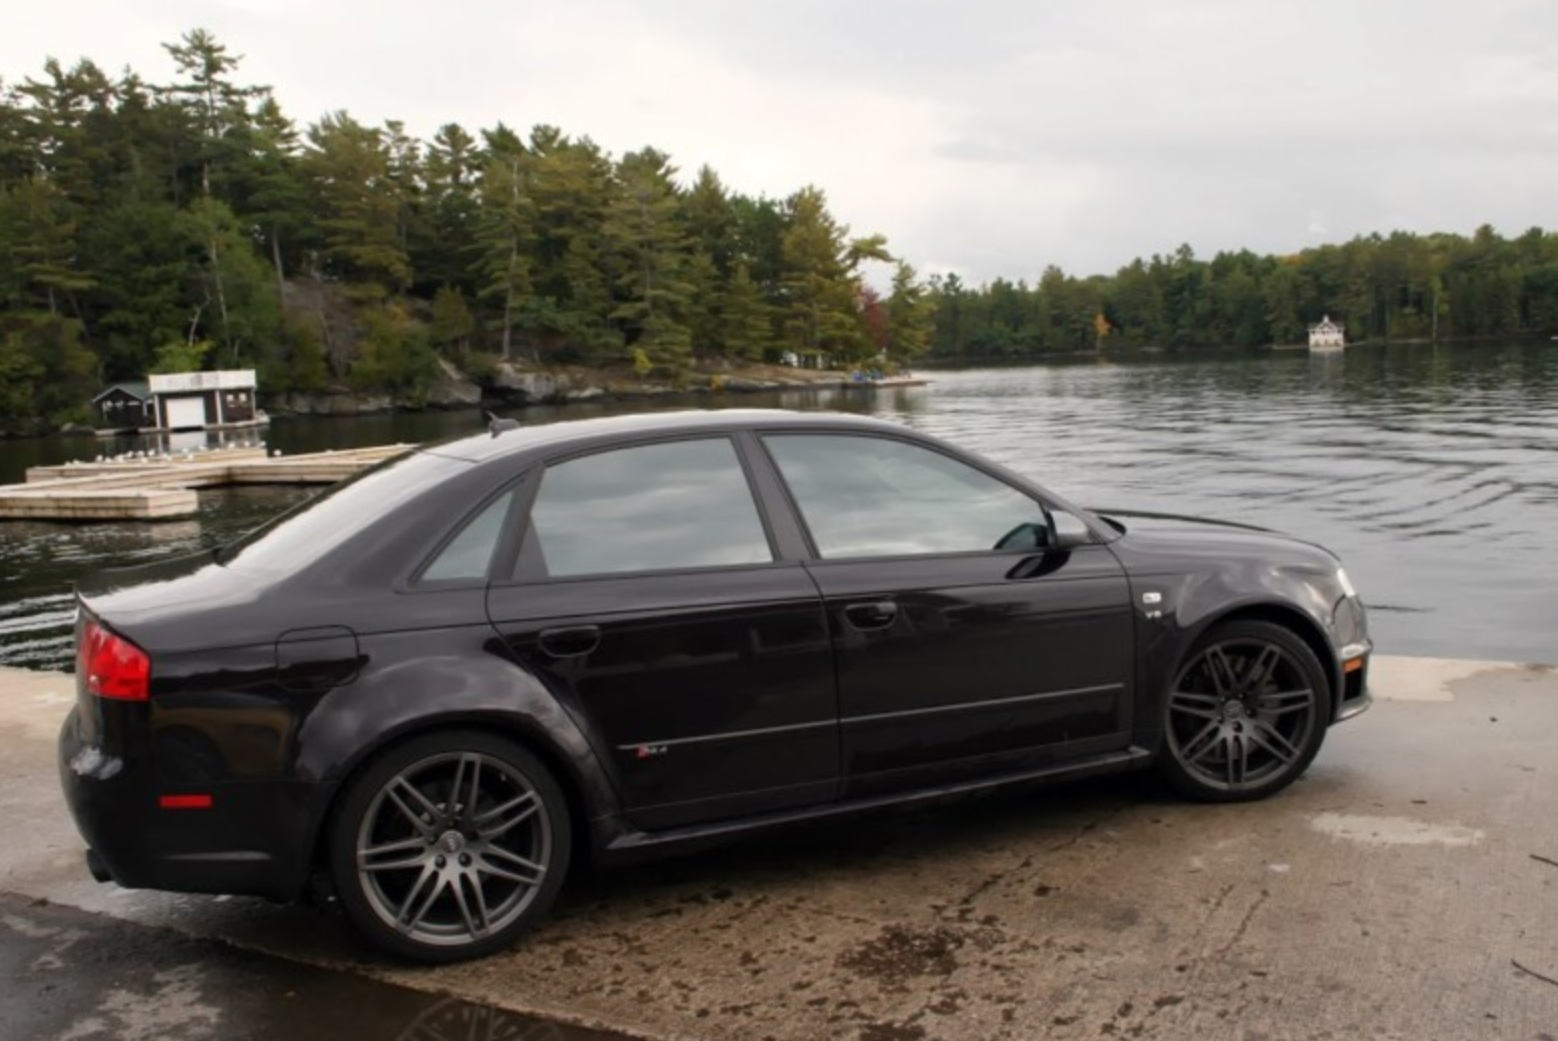 Audi S8 For Sale >> 2008 Audi RS4 | German Cars For Sale Blog